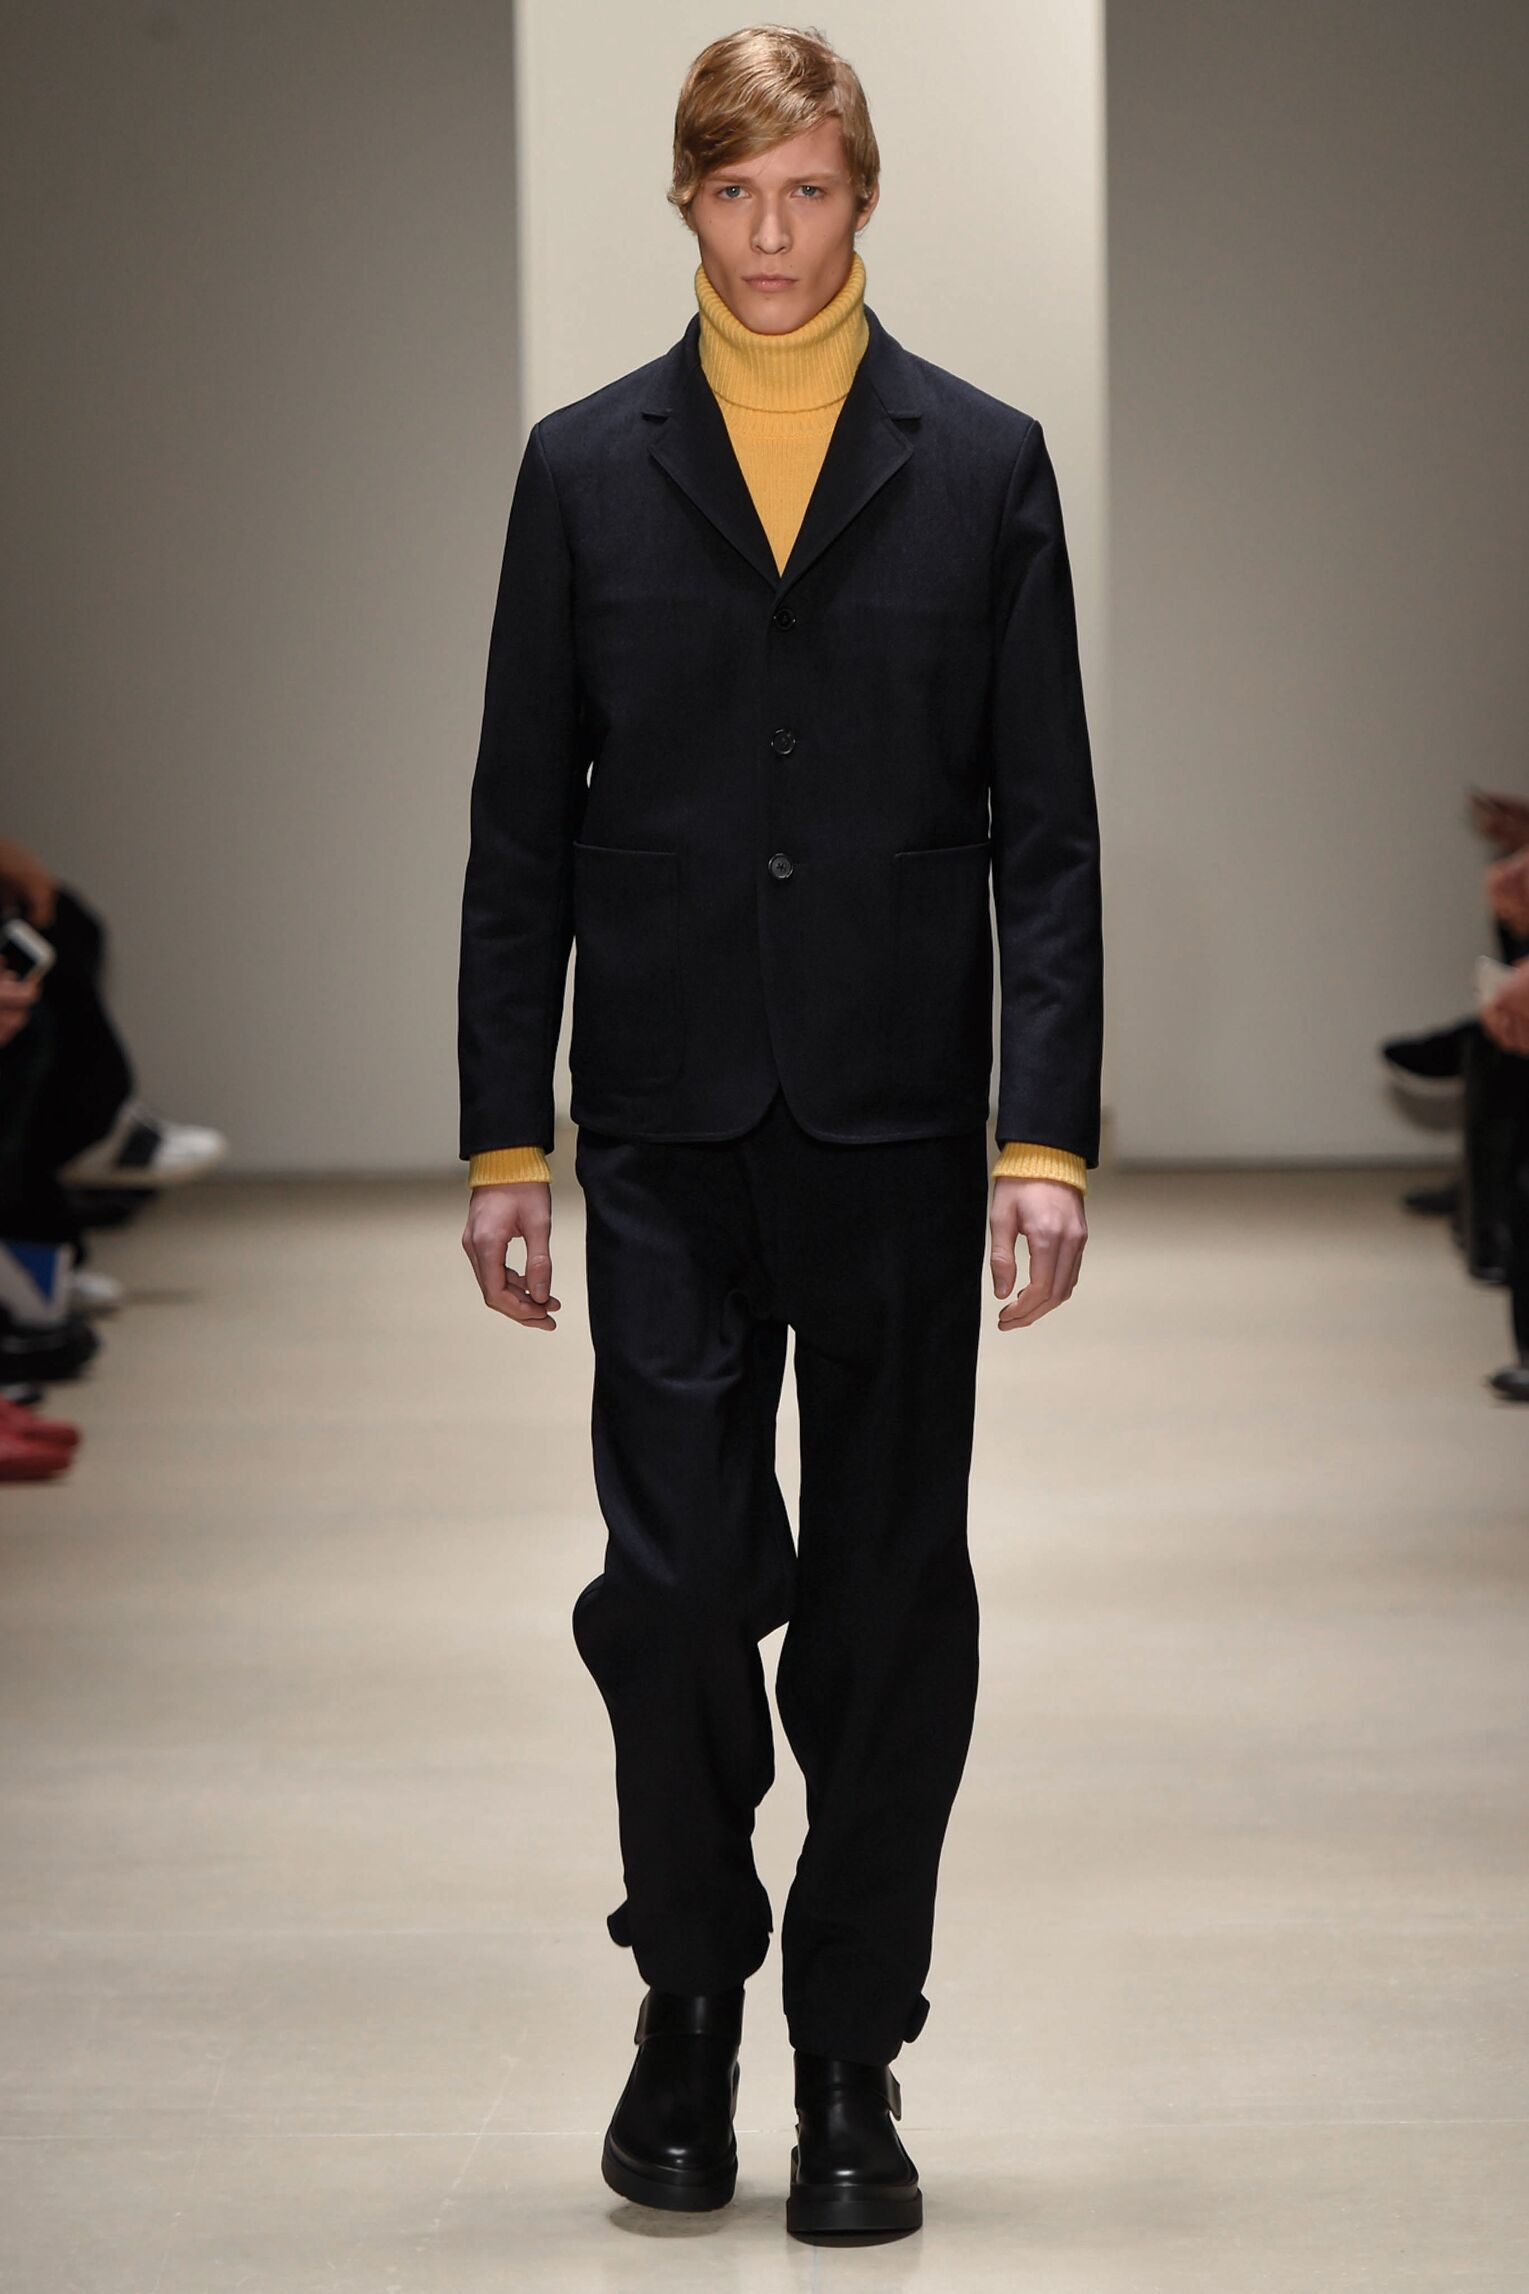 Fall Winter 2015 16 Fashion Men's Collection Jil Sander